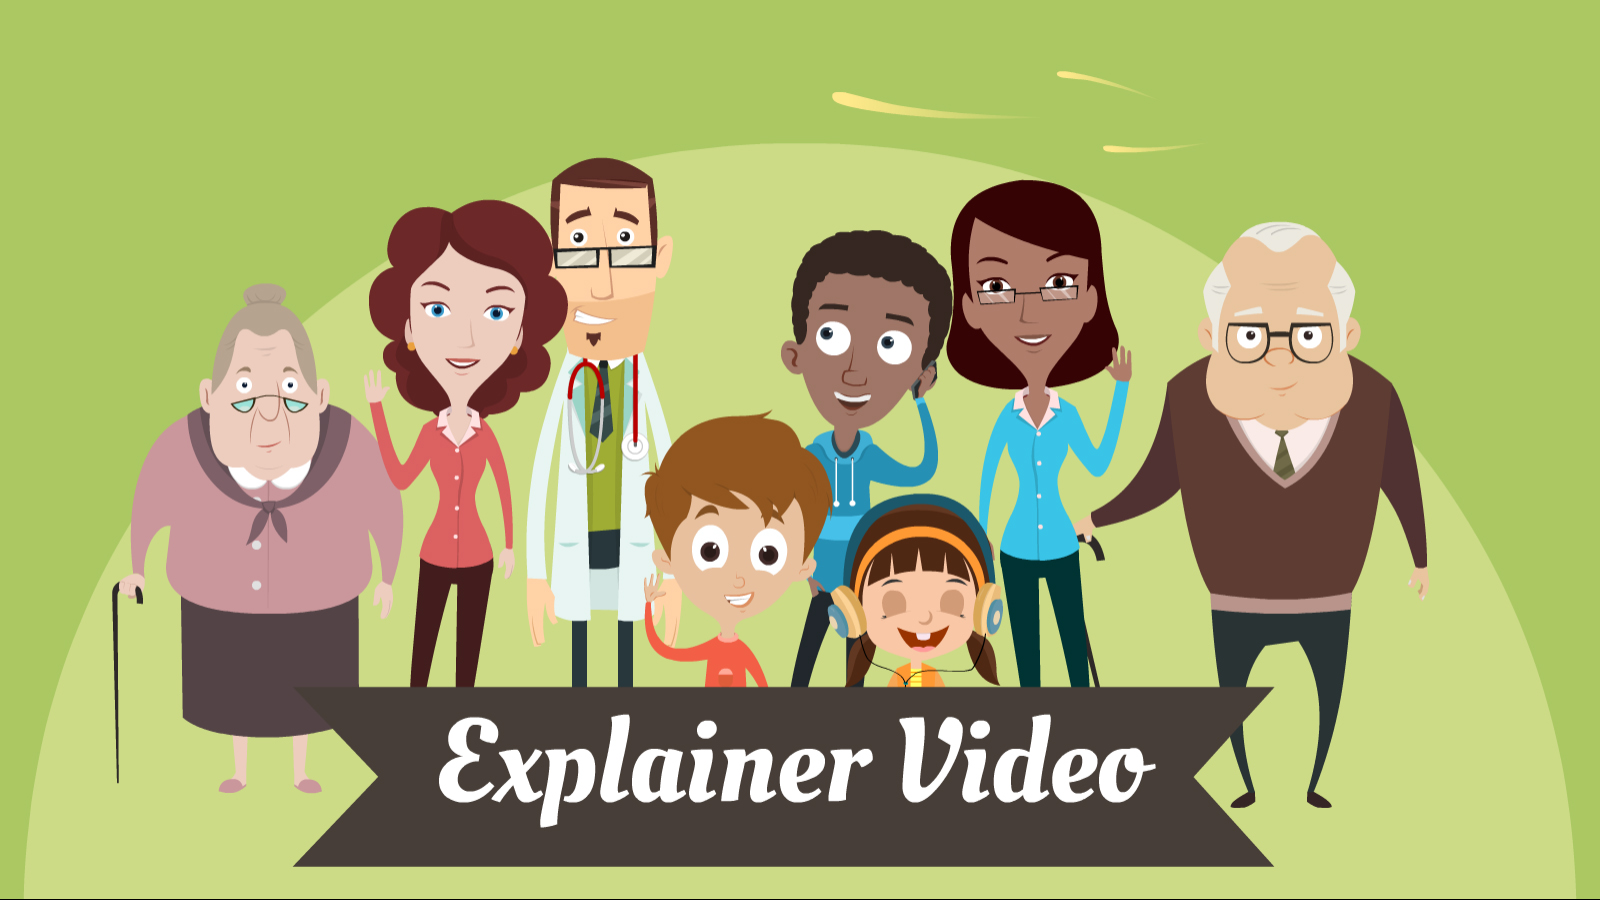 Create explainer video to promote your business via Youtube